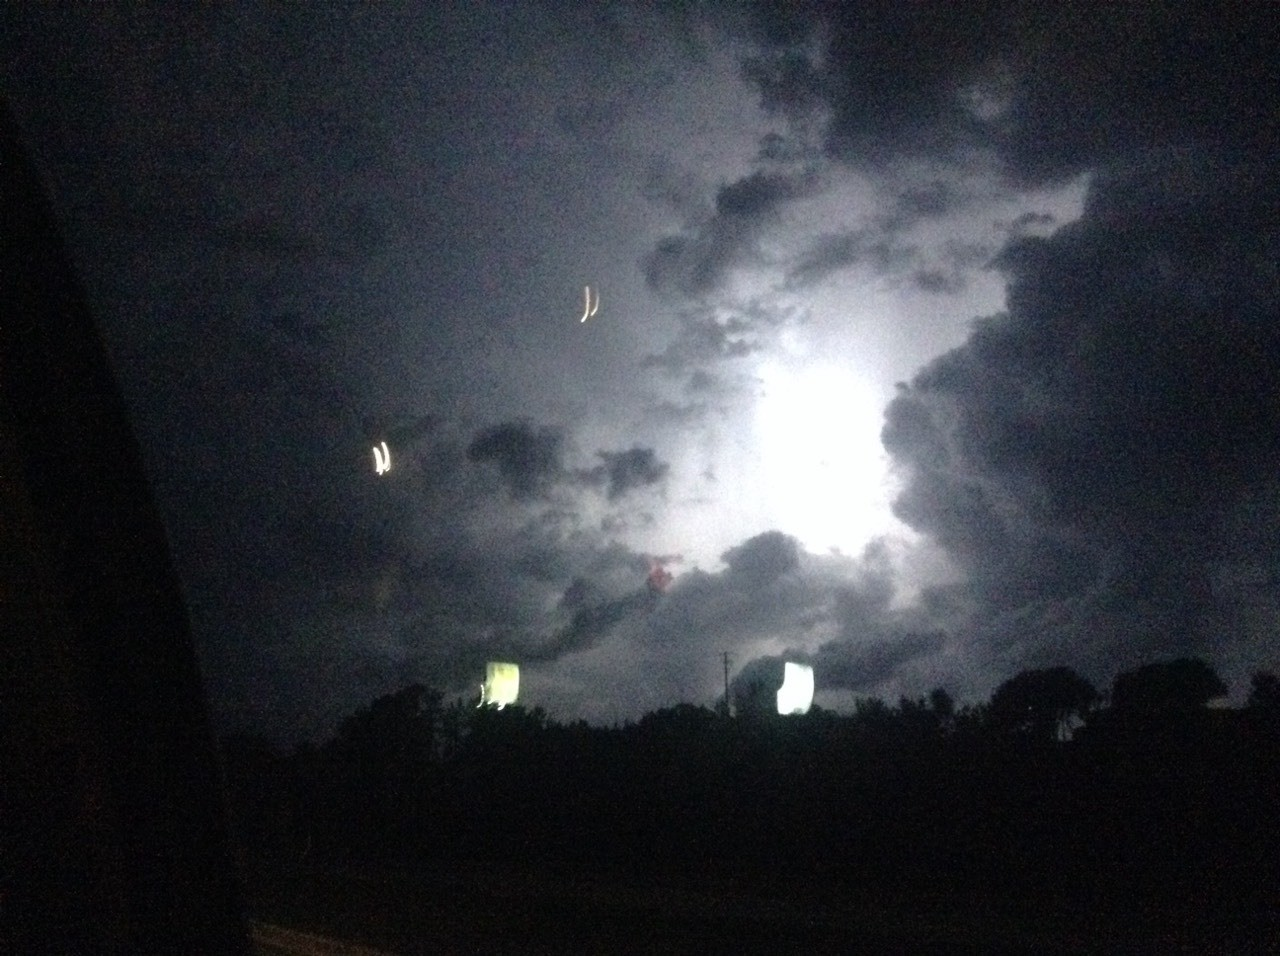 Here is a cool lightning pic taken in Coumbia Sc.